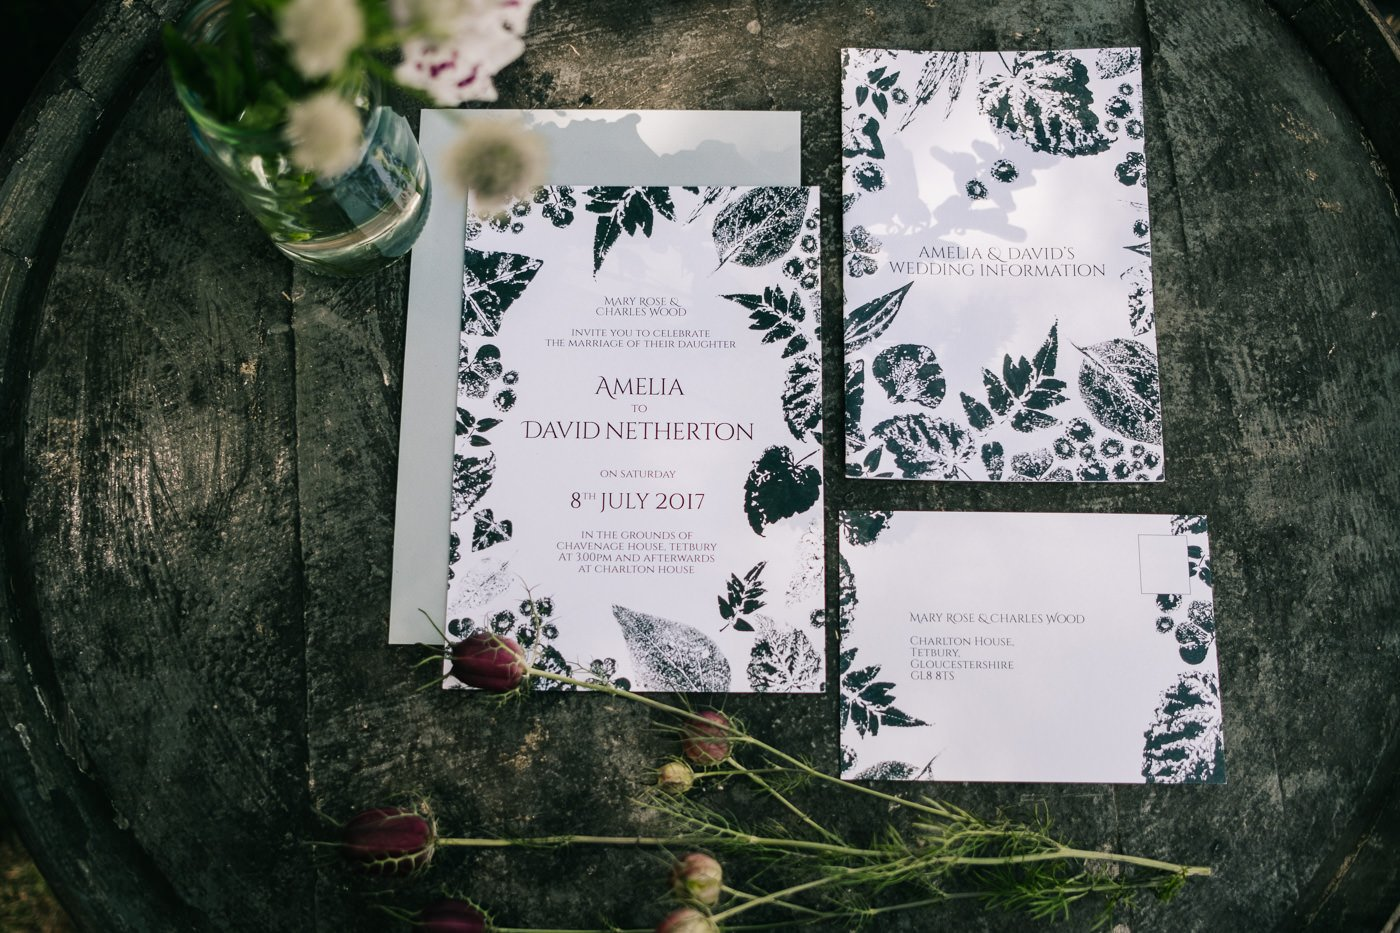 graphic wedding stationery for a humanist outdoor wedding